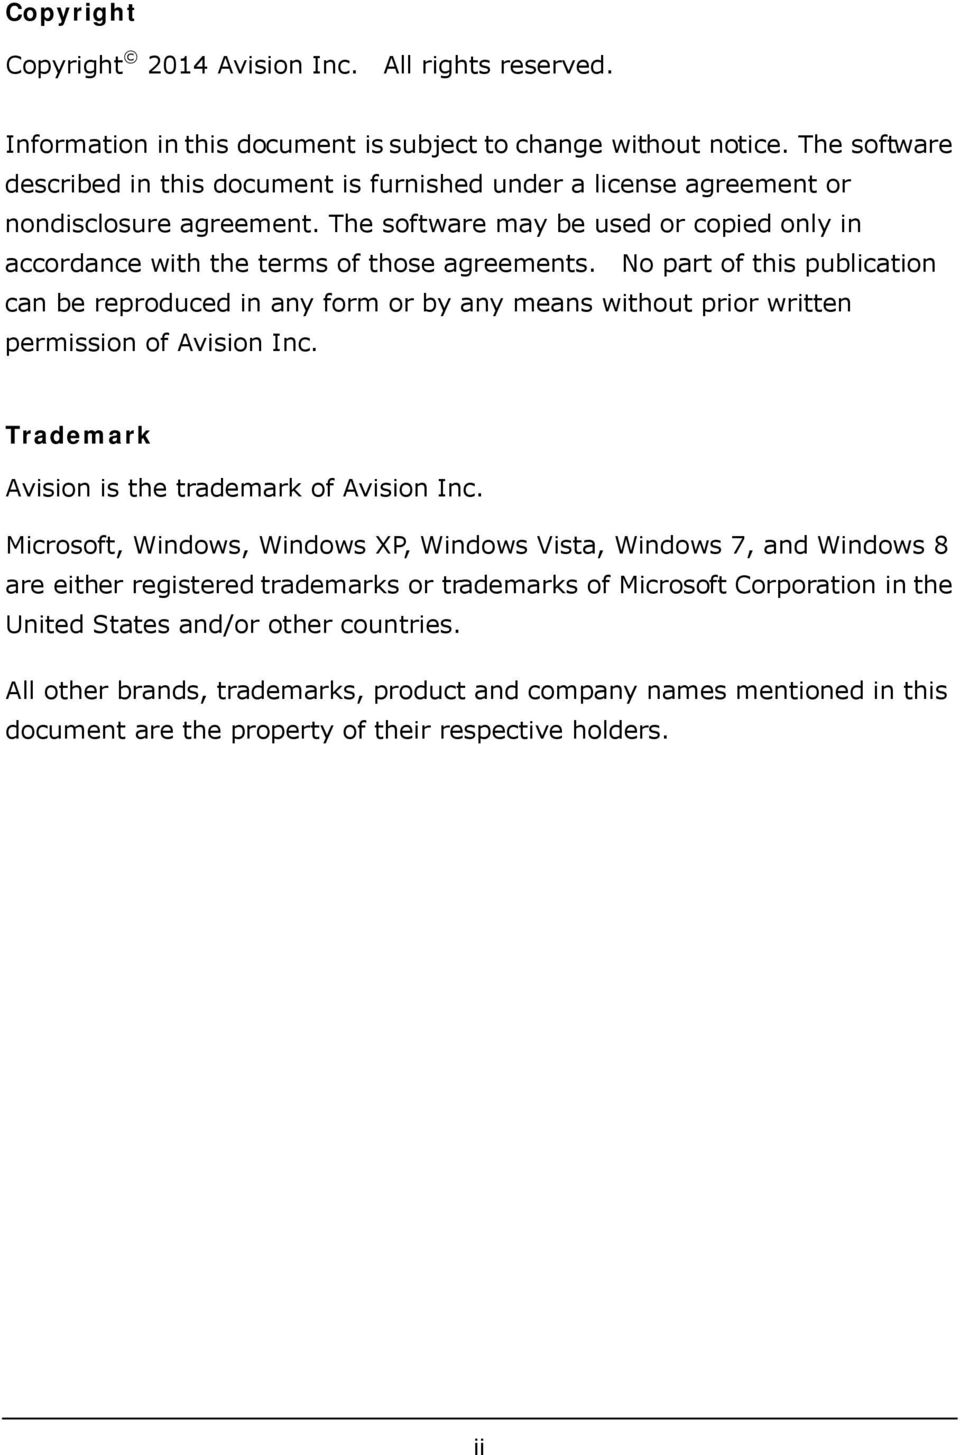 No part of this publication can be reproduced in any form or by any means without prior written permission of Avision Inc. Trademark Avision is the trademark of Avision Inc.